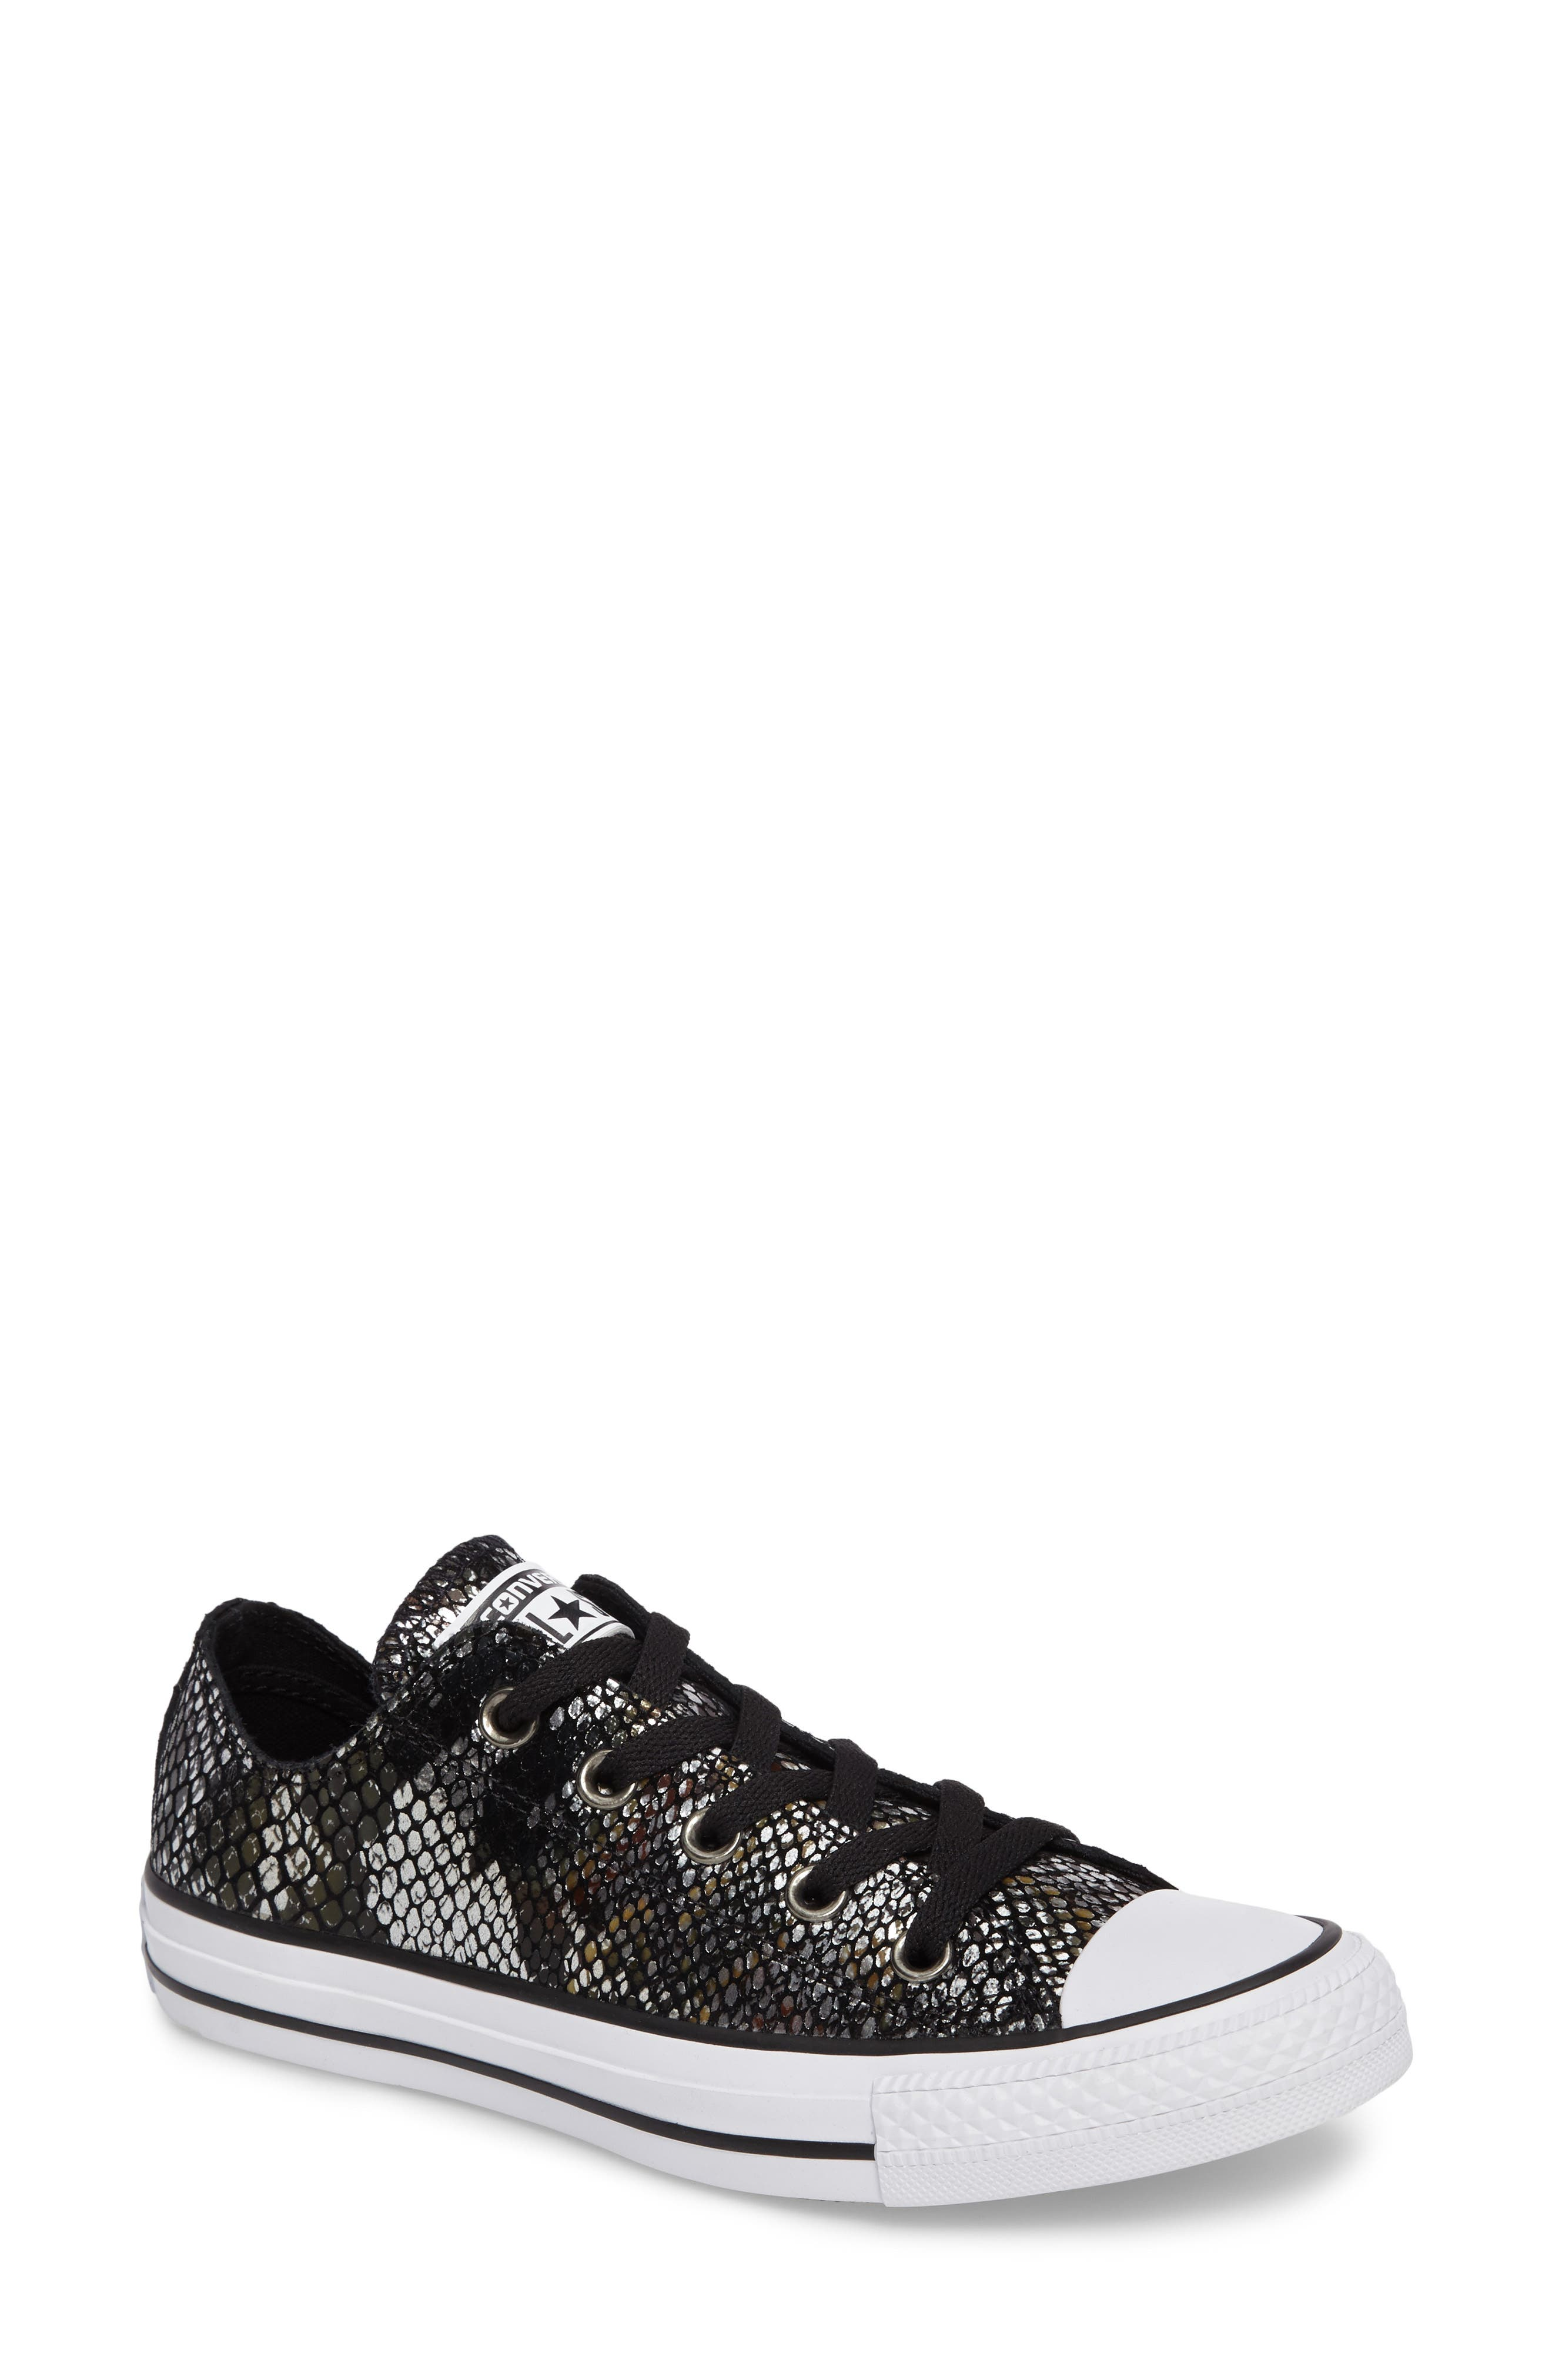 Main Image - Converse Chuck Taylor® All Star® Ox Leather Sneaker (Women)